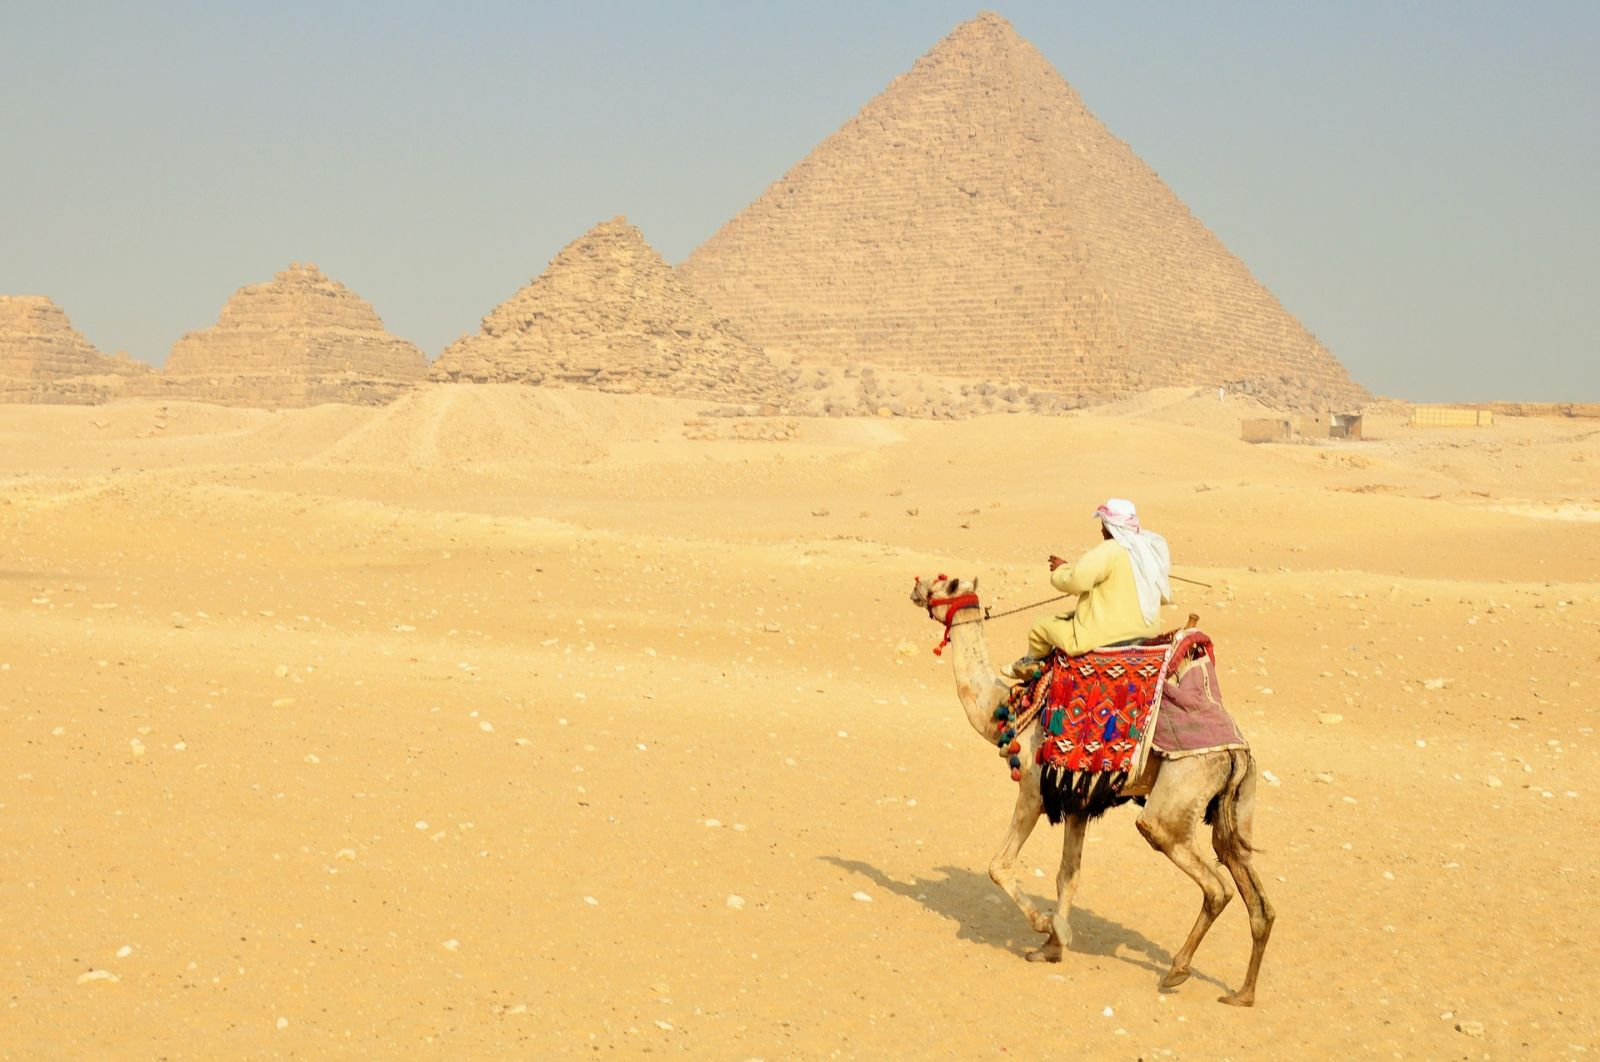 Pyramids of Giza & the Sphinx